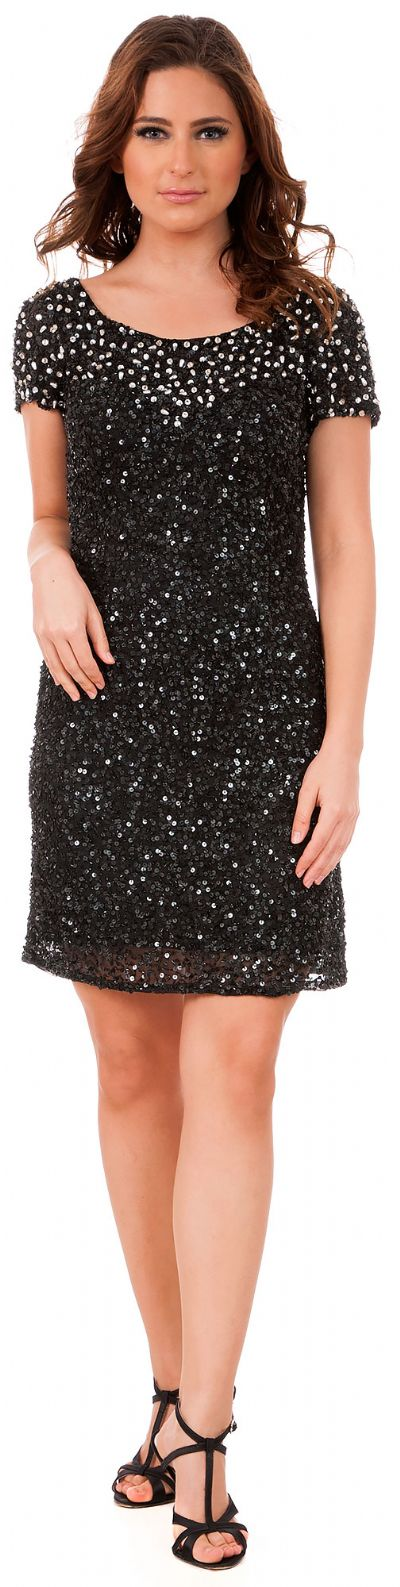 Short Sequins Homecoming Prom Dress with Keyhole Back